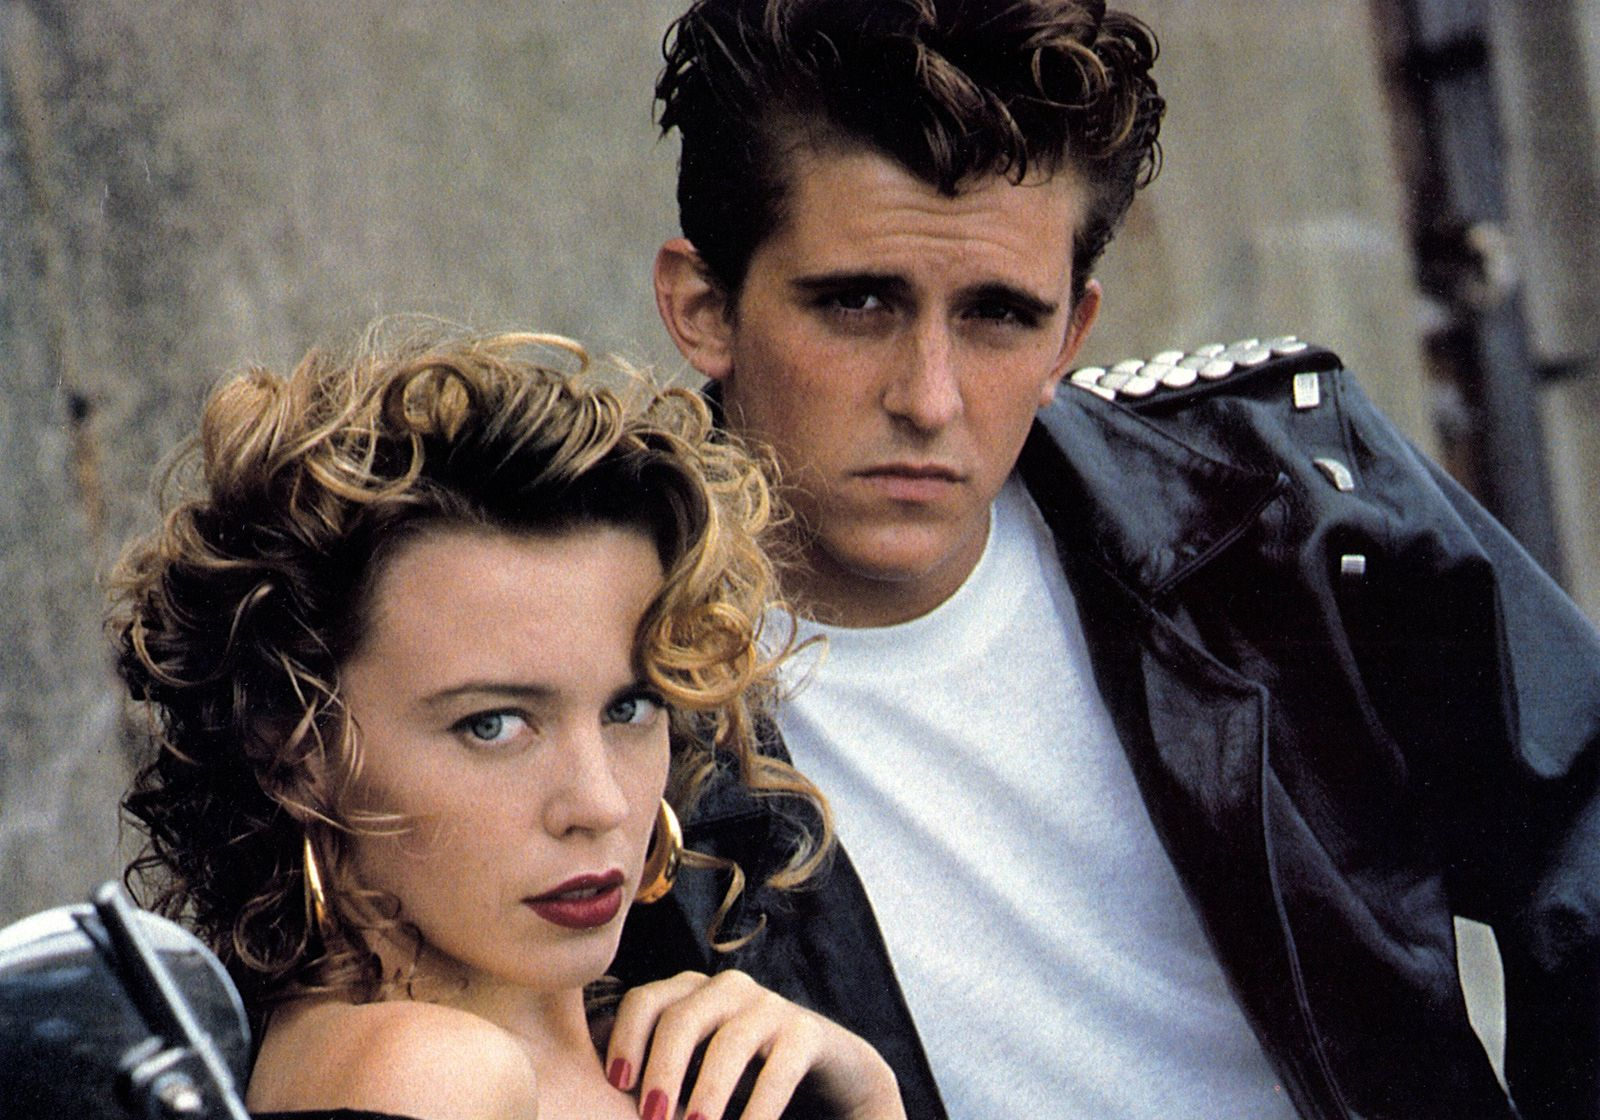 Kylie Minogue & Charlie Schlatter Characters: Lola Lovell, Brownie Hansen Film: The Delinquents (1989) Director: Chris T